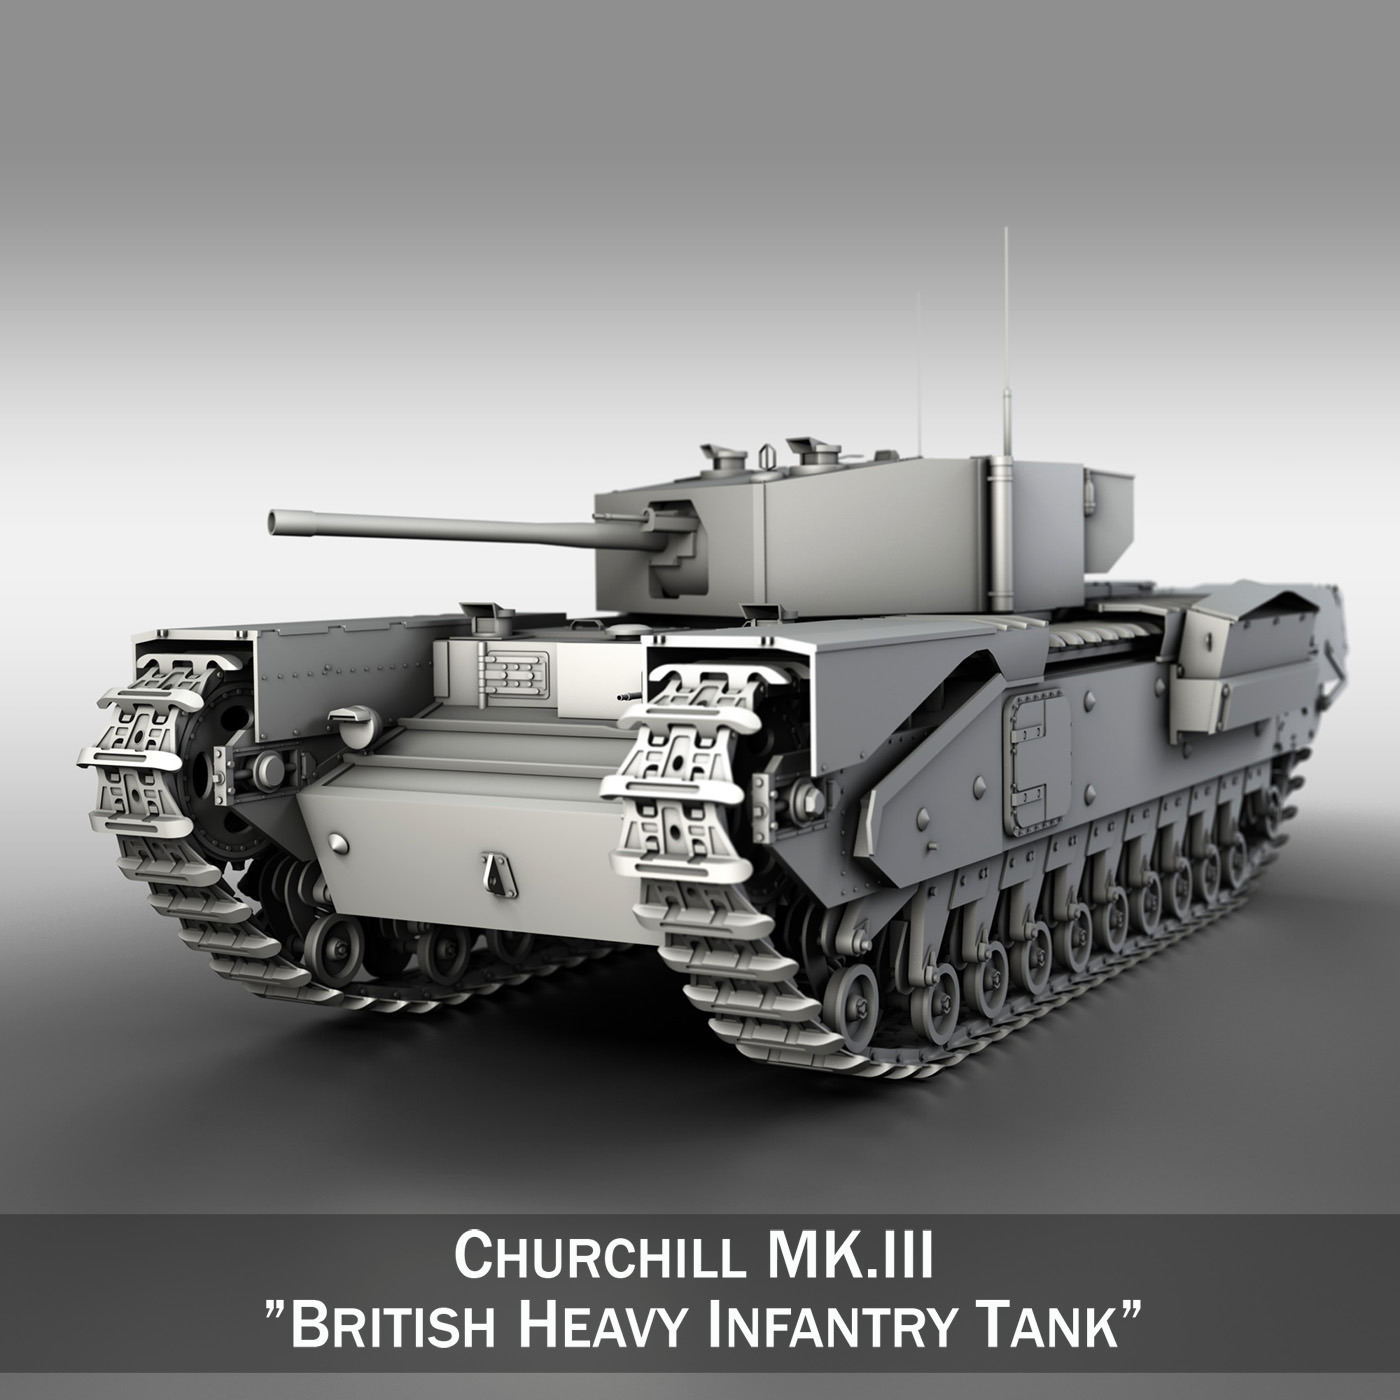 churchill infantry tank mk.iii 3d model 3ds fbx c4d lwo obj 271960